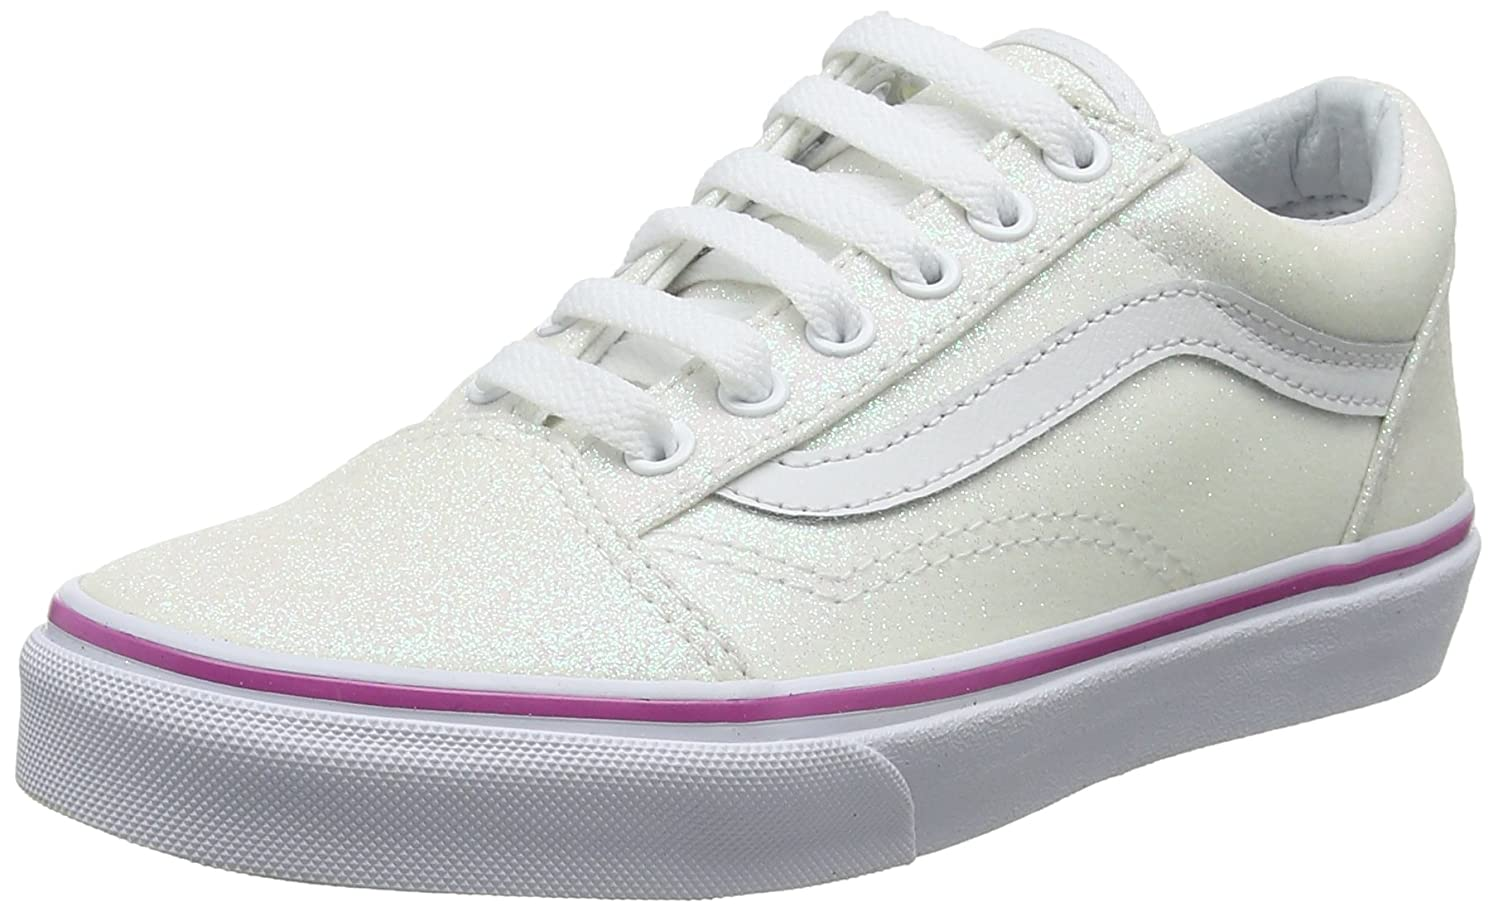 Vans Girls Old Skool Glitter Lace Sneakers